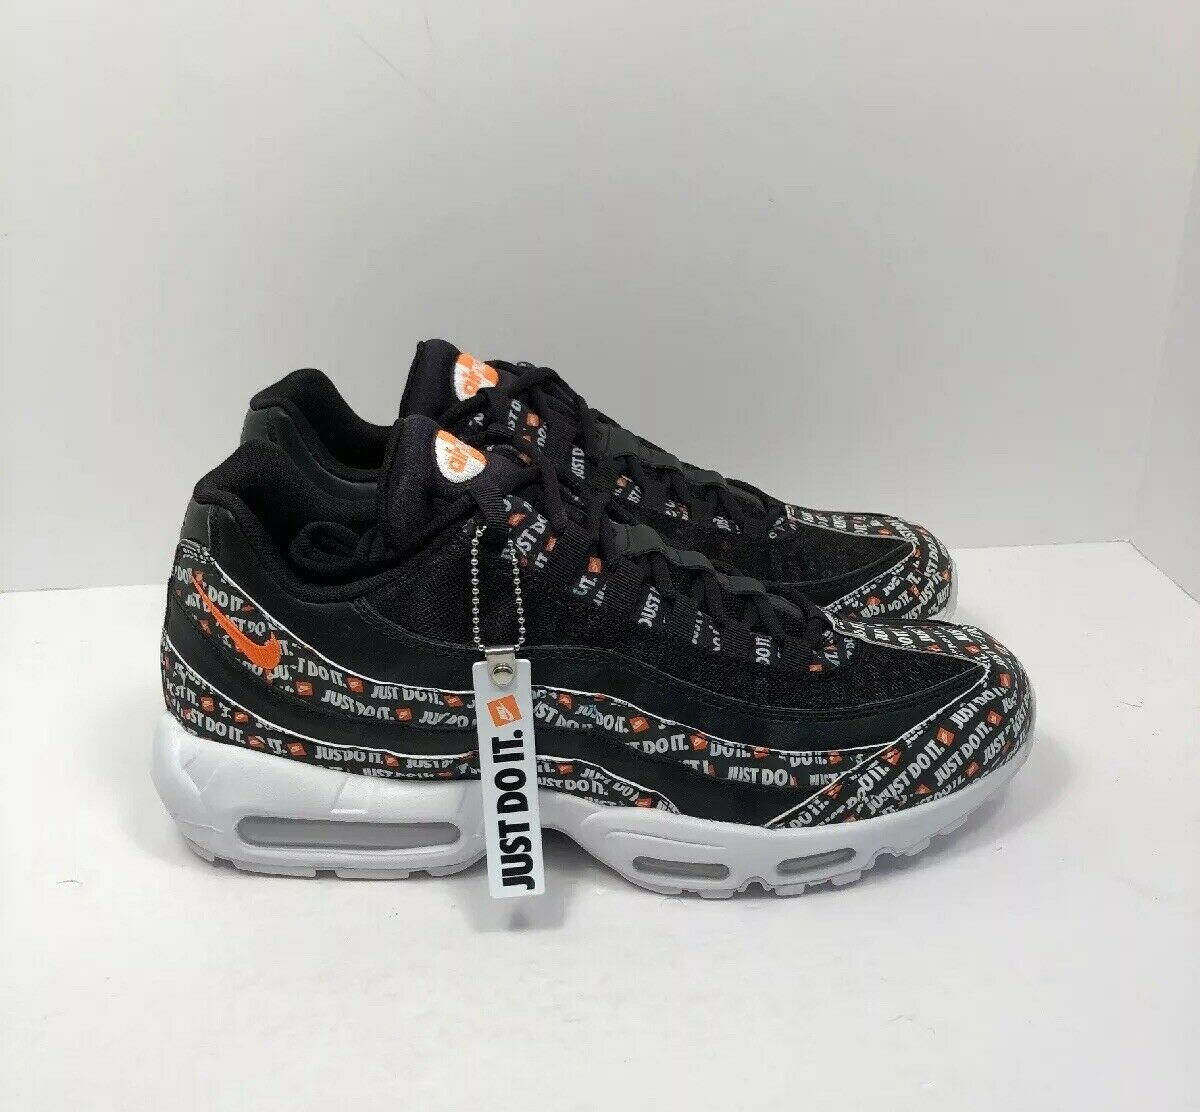 """d69b2233b28 Nike Air Max 95 SE """"Just Do It"""" Size 10.5 MSRP 170 shoes Running  nxkqpo45-Athletic Shoes"""